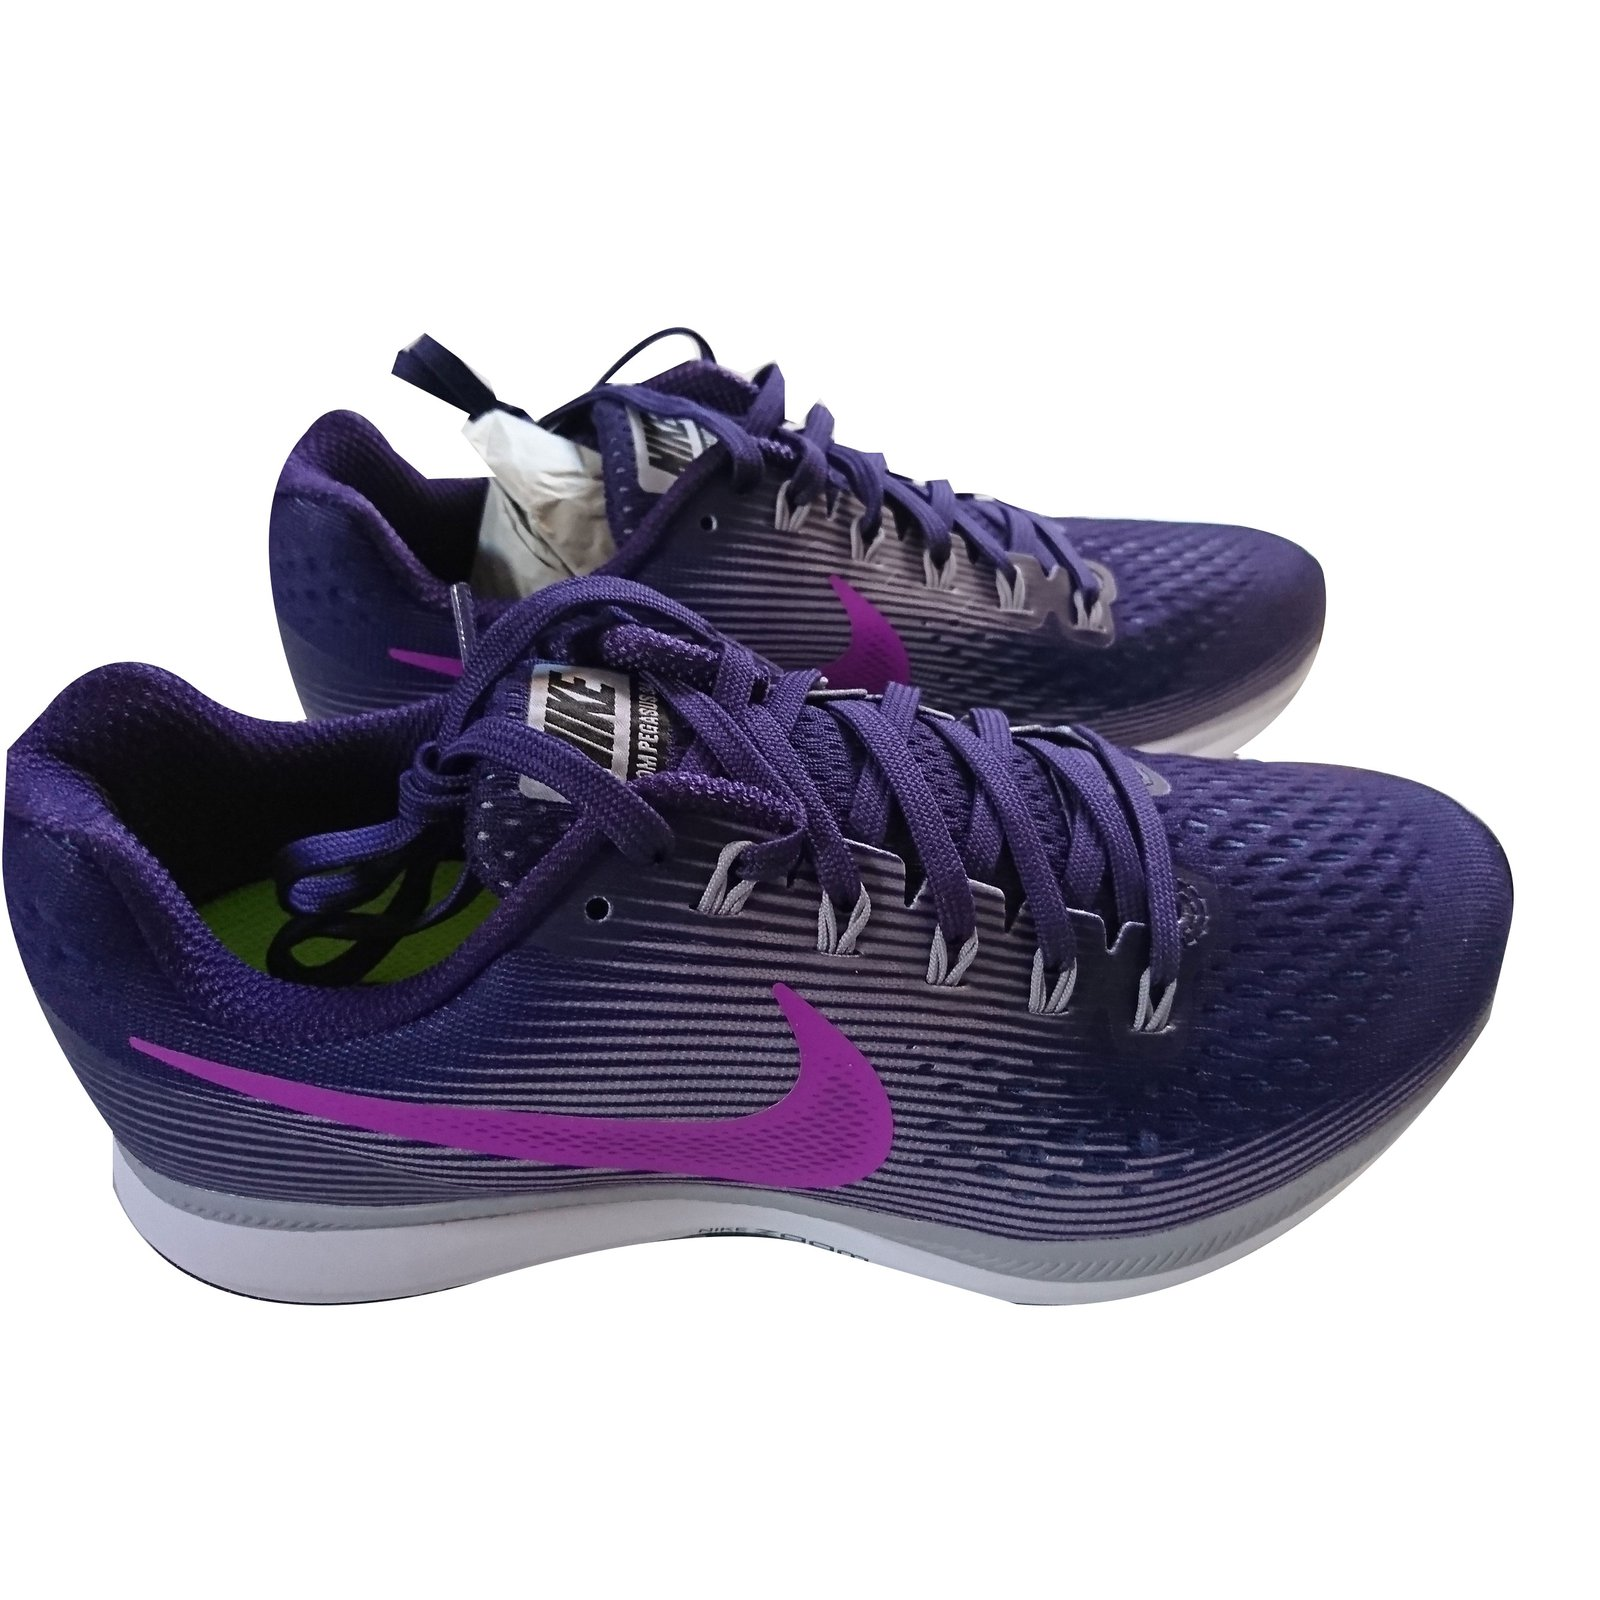 big sale de123 8d292 Nike air zoom pegasus 34